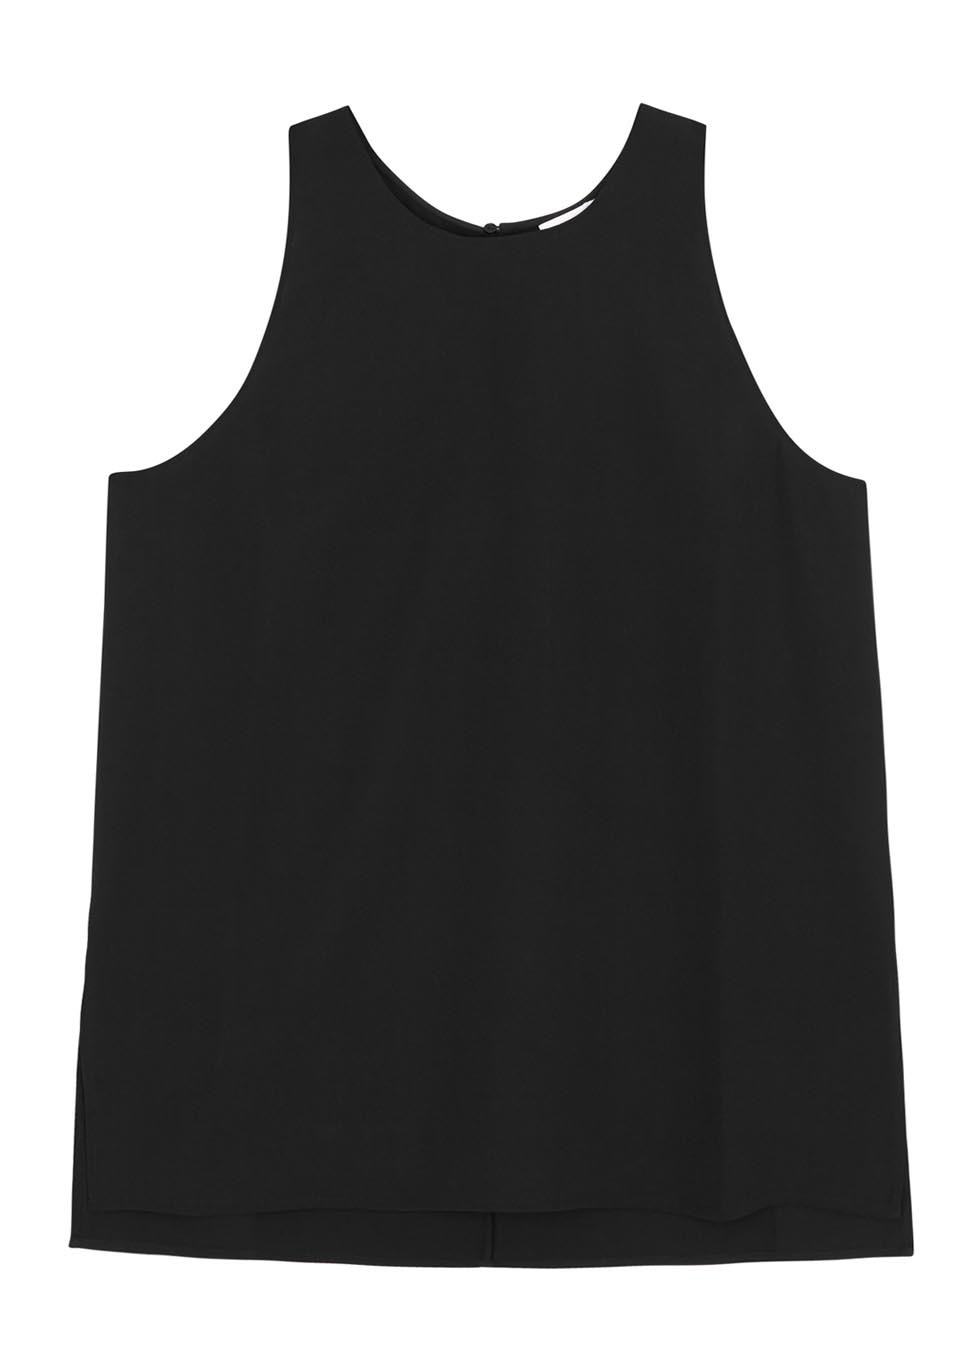 Black Crepe Tank - pattern: plain; sleeve style: sleeveless; style: vest top; predominant colour: black; occasions: casual; length: standard; fibres: polyester/polyamide - 100%; fit: body skimming; neckline: crew; sleeve length: sleeveless; texture group: crepes; pattern type: fabric; season: s/s 2016; wardrobe: basic